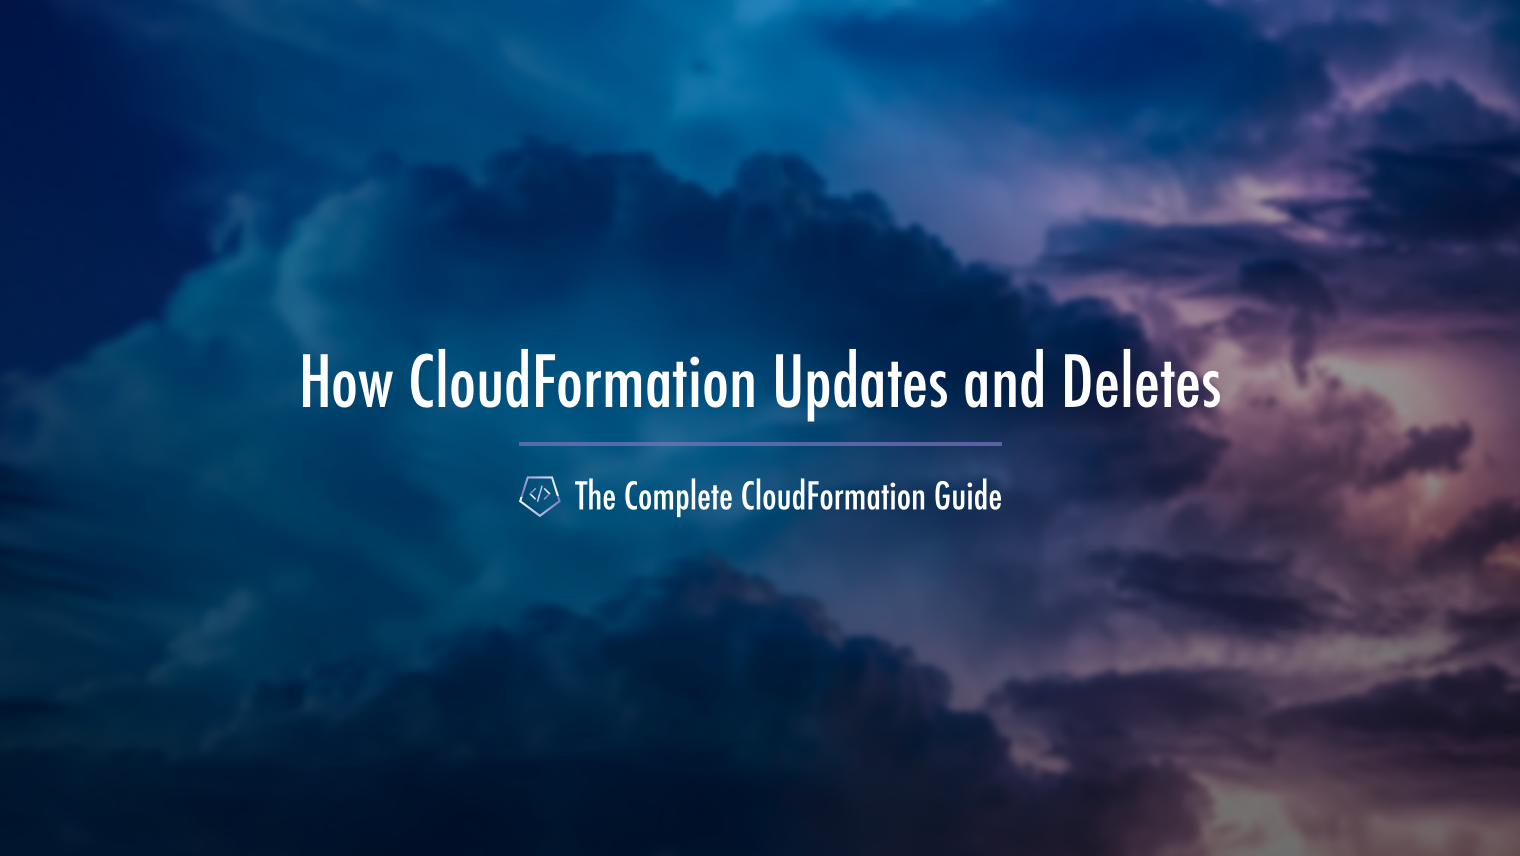 The Complete CloudFormation Guide How CloudFormation Does Updates and Deletes